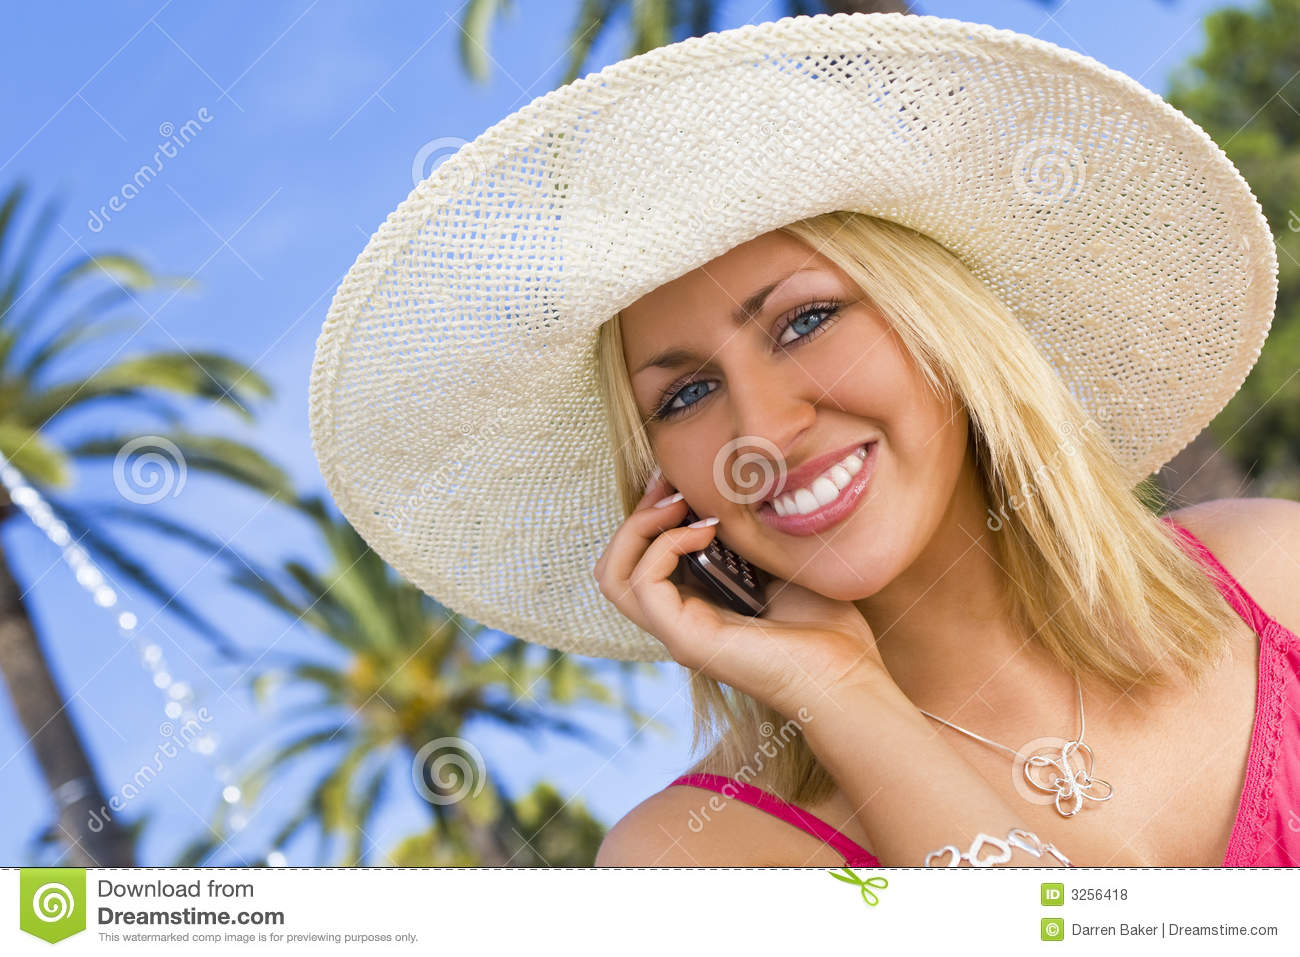 Tropical Phonecall